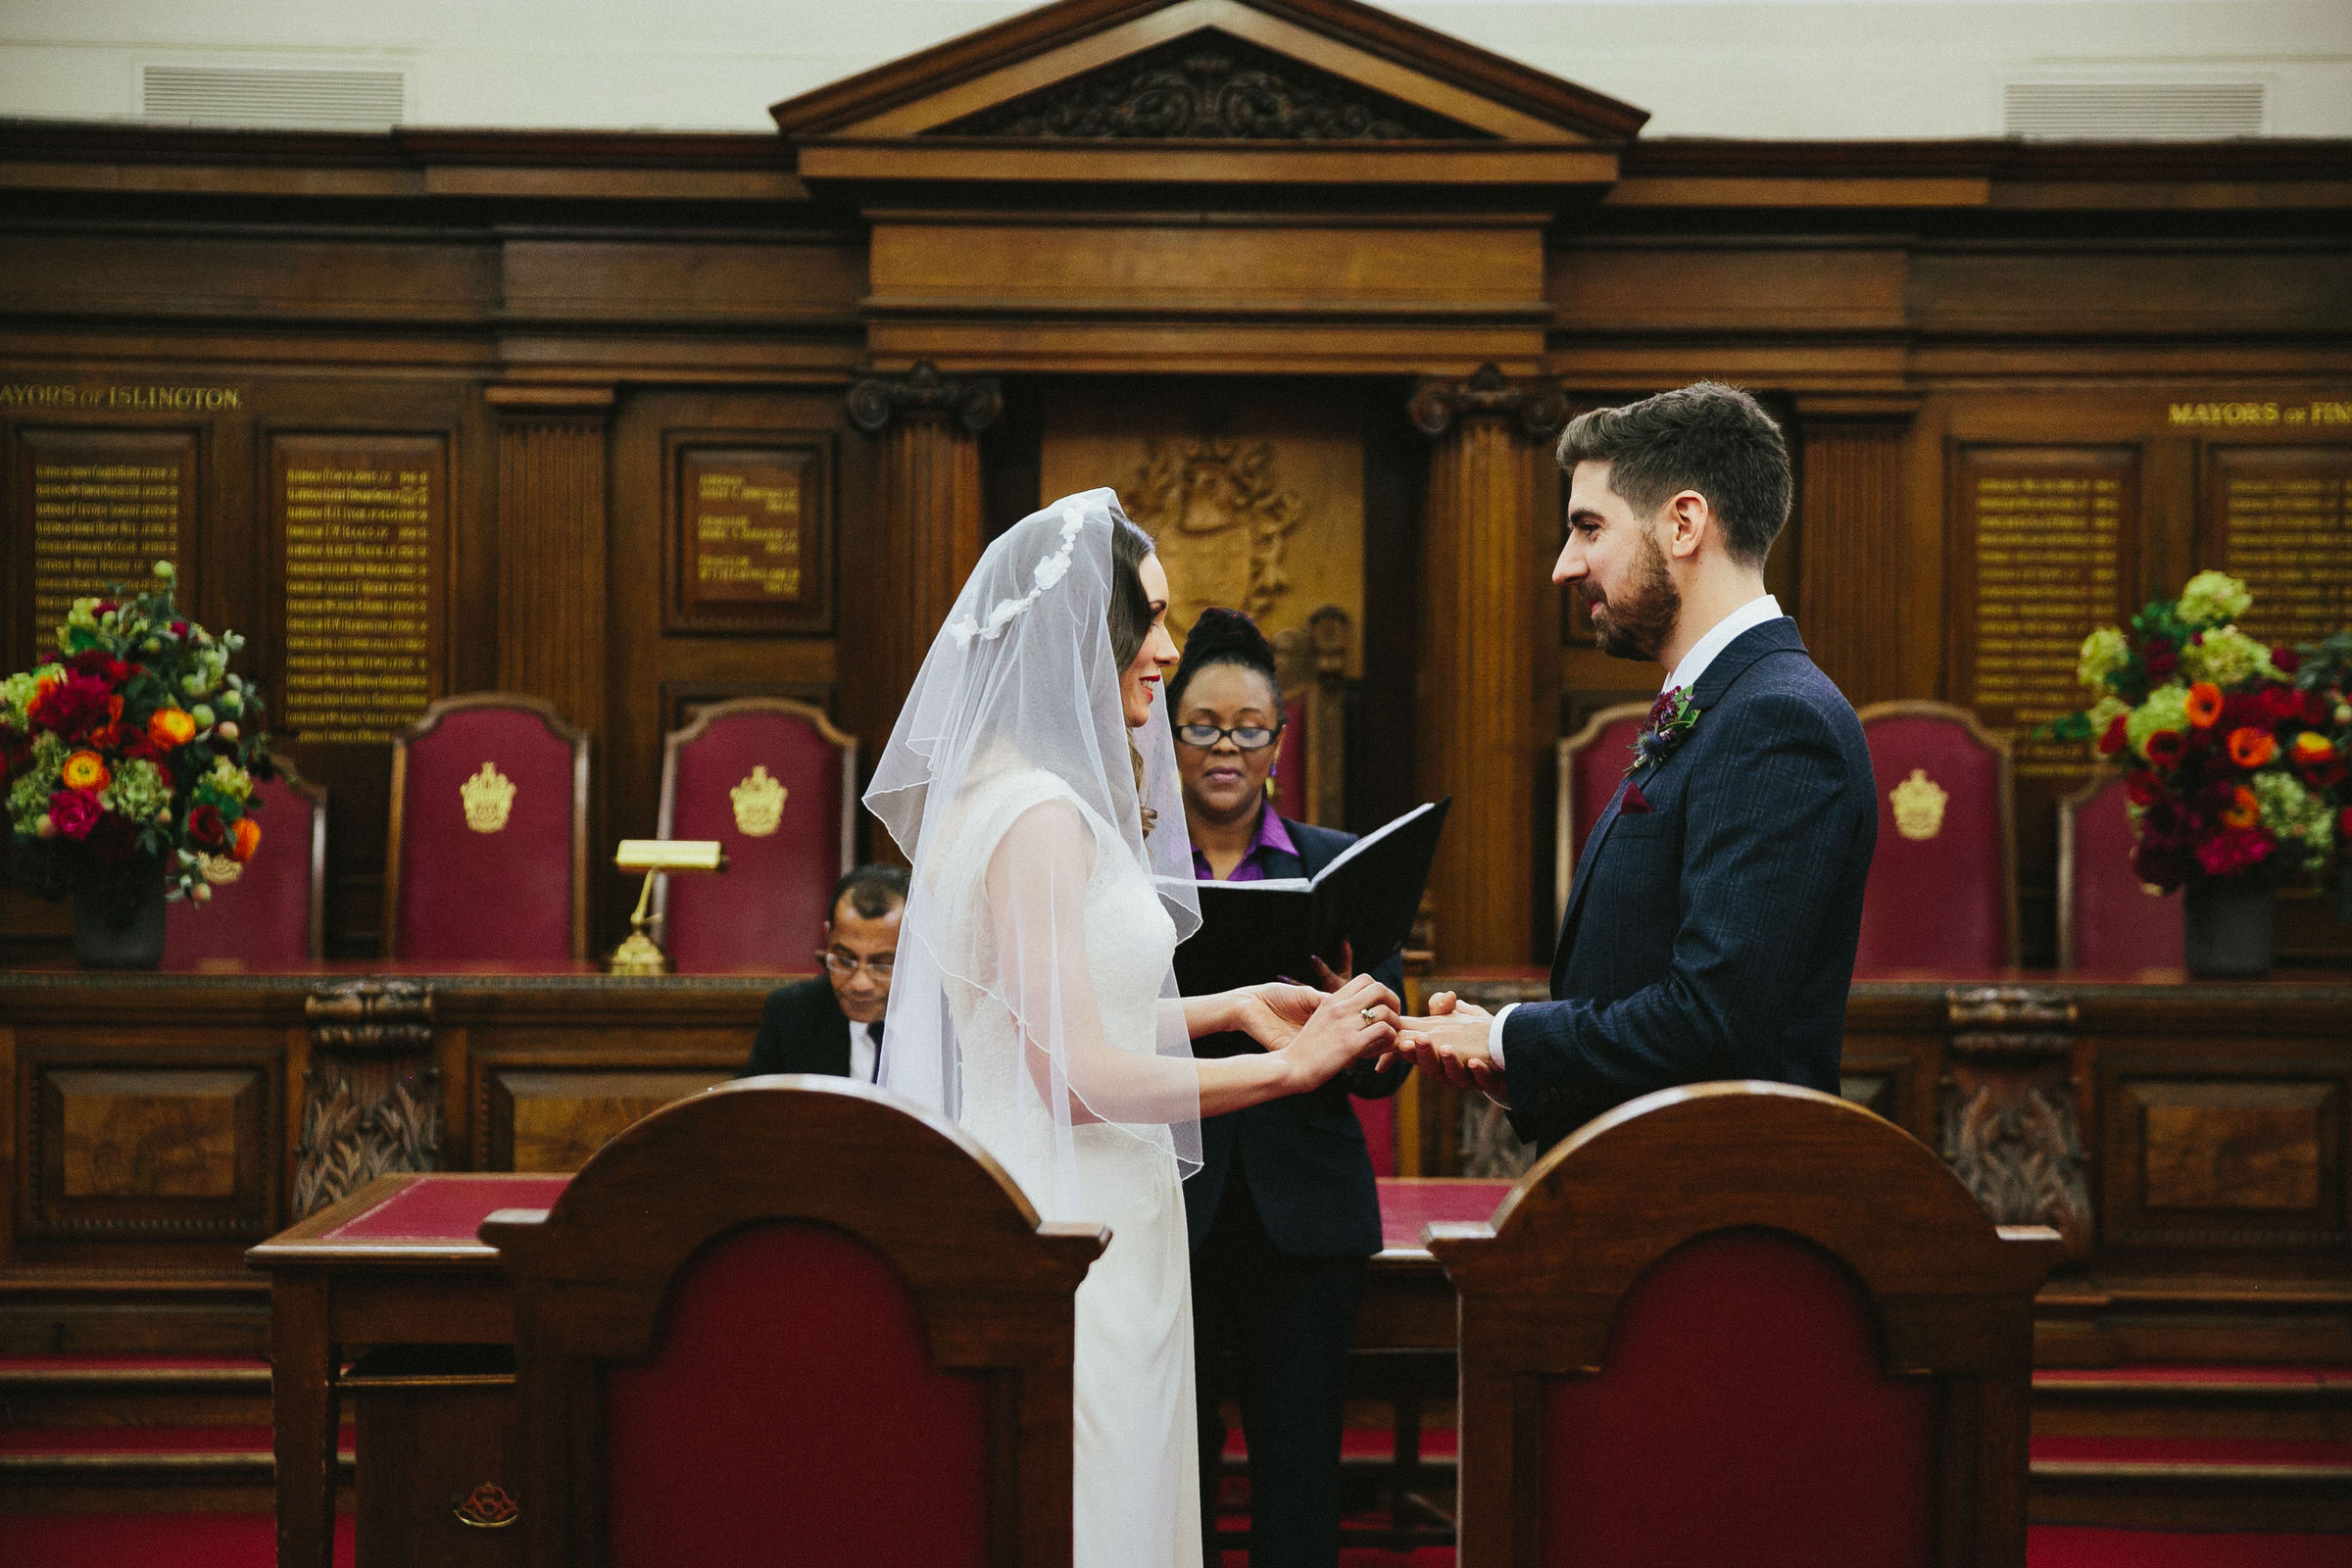 Islington Town Hall ceremony